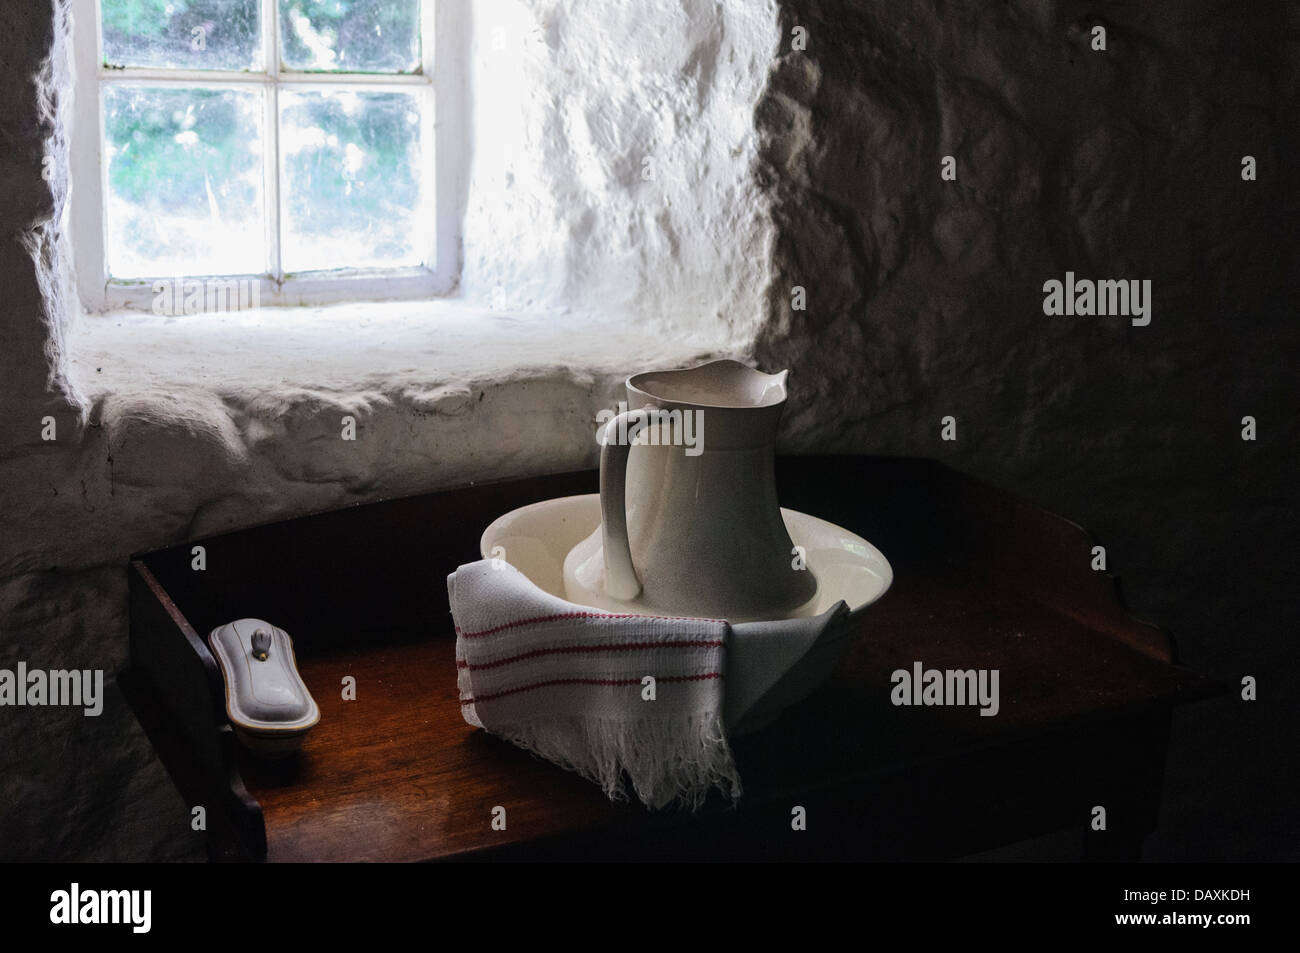 Old fashioned wash jug and basin by the window of a traditional Irish farmhouse - Stock Image